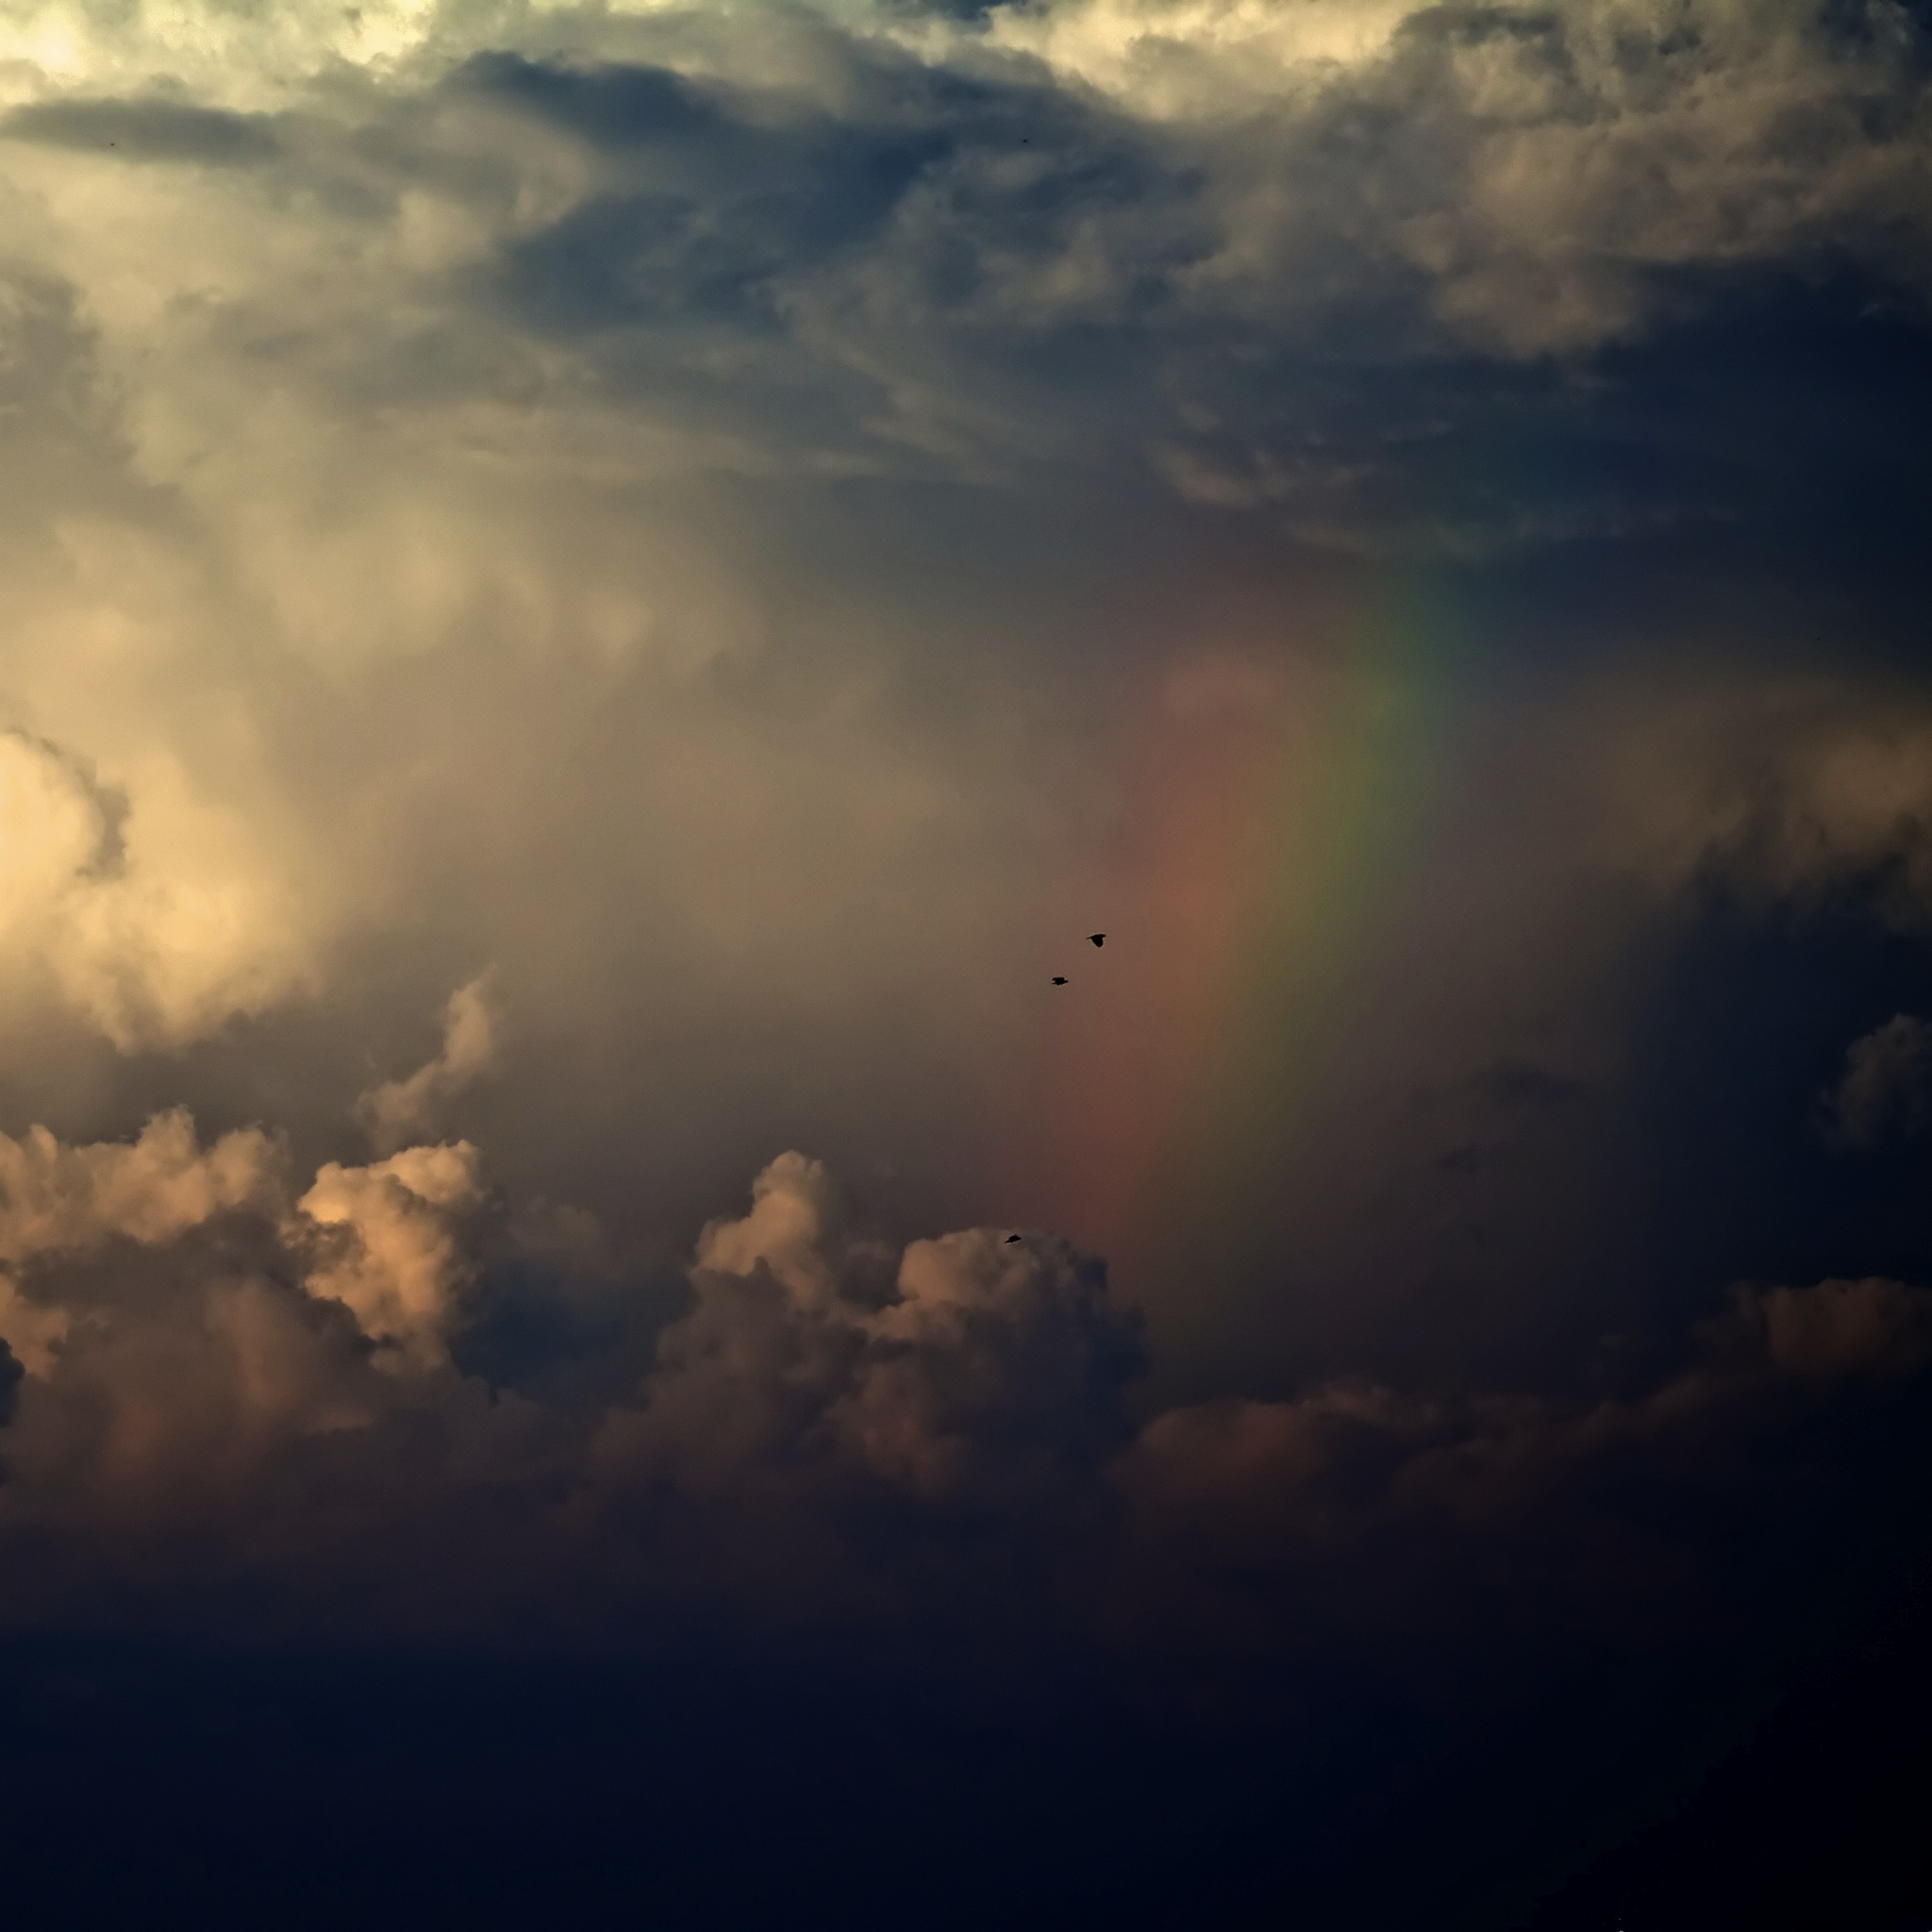 The Rainbow in the Clouds 3W iPad.jpg  The Rainbow in the Clouds   iPad